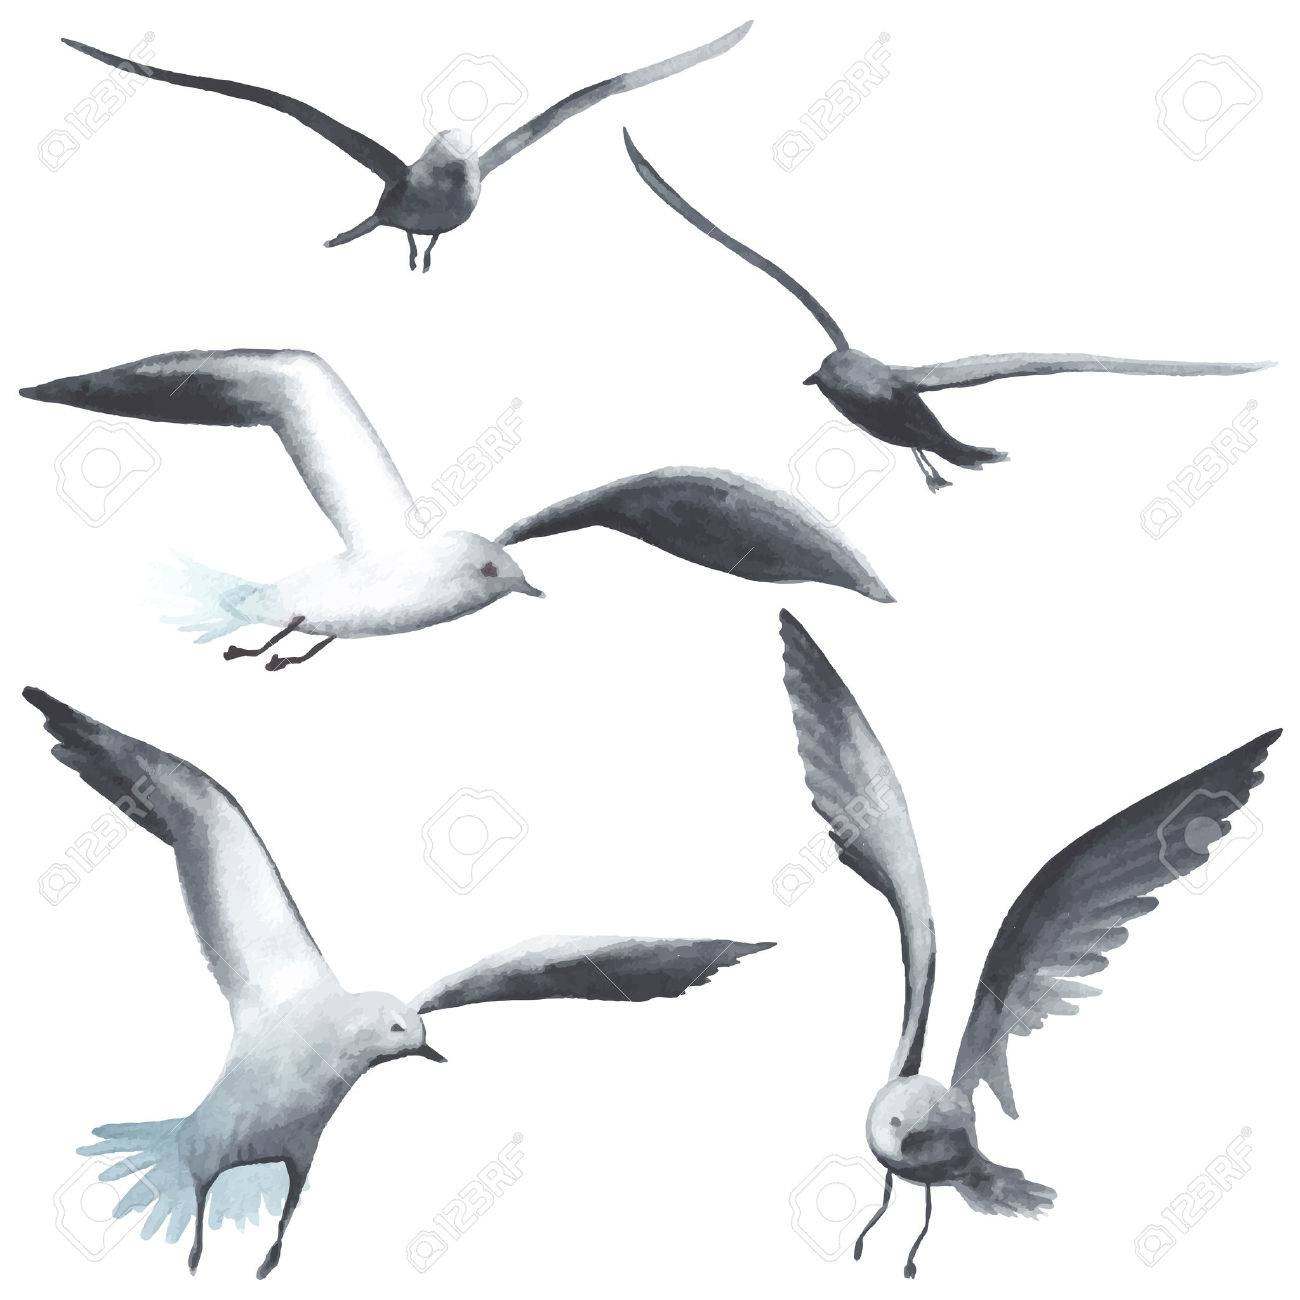 Watercolor seagull each bird is separately royalty free cliparts watercolor seagull each bird is separately stock vector 42184961 altavistaventures Image collections